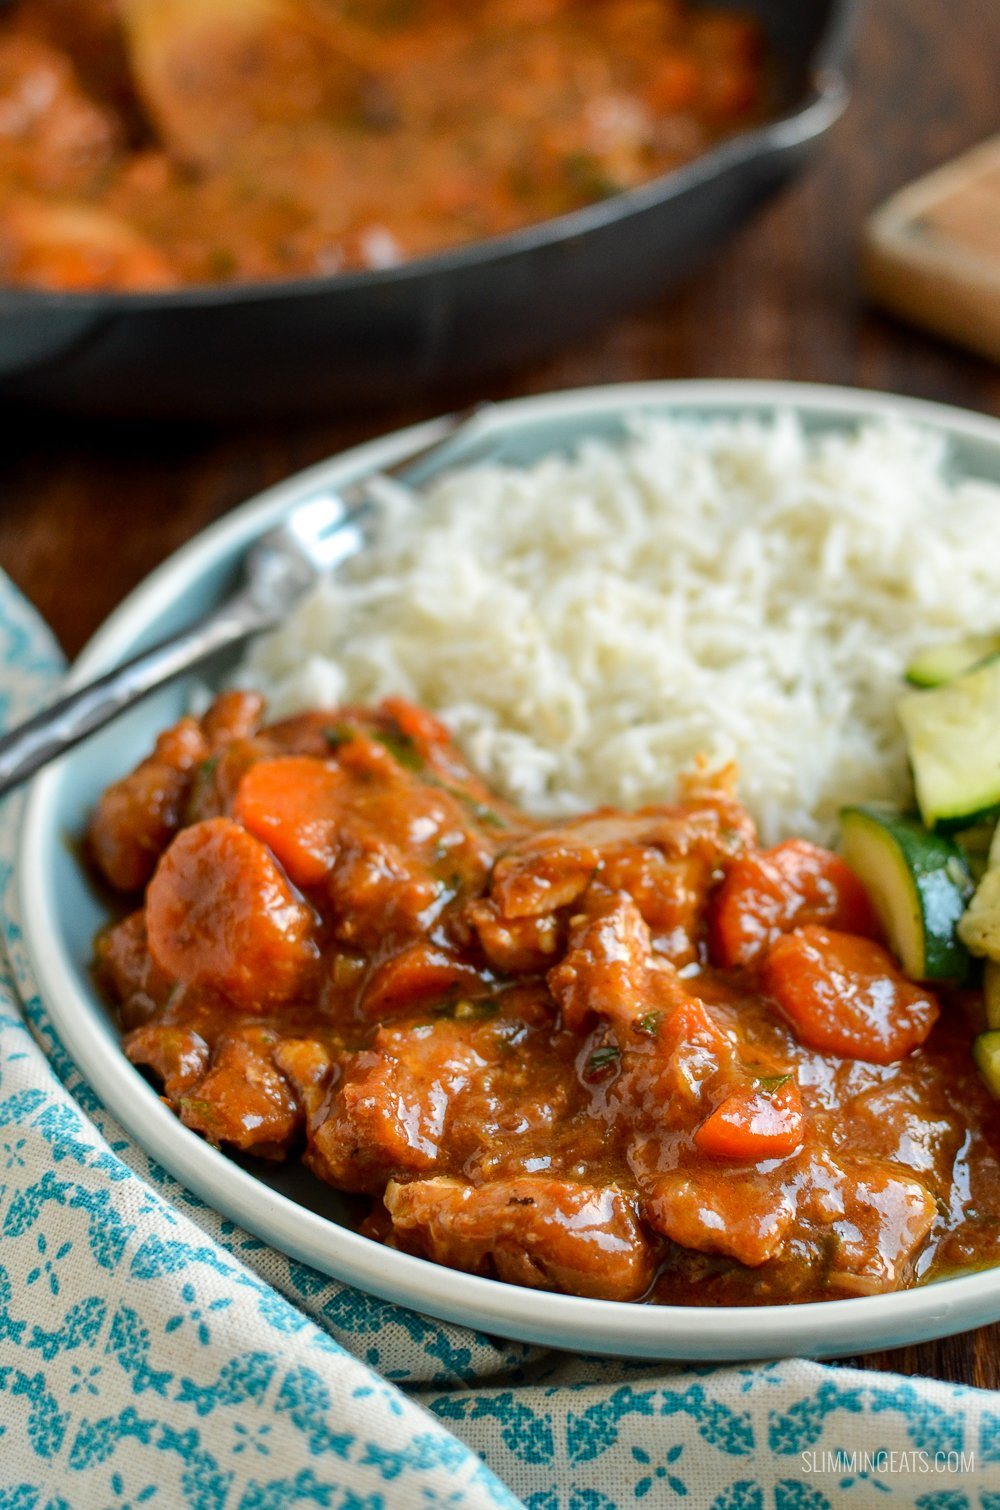 spicy ginger chicken on blue plate with sautéed zucchini and rice